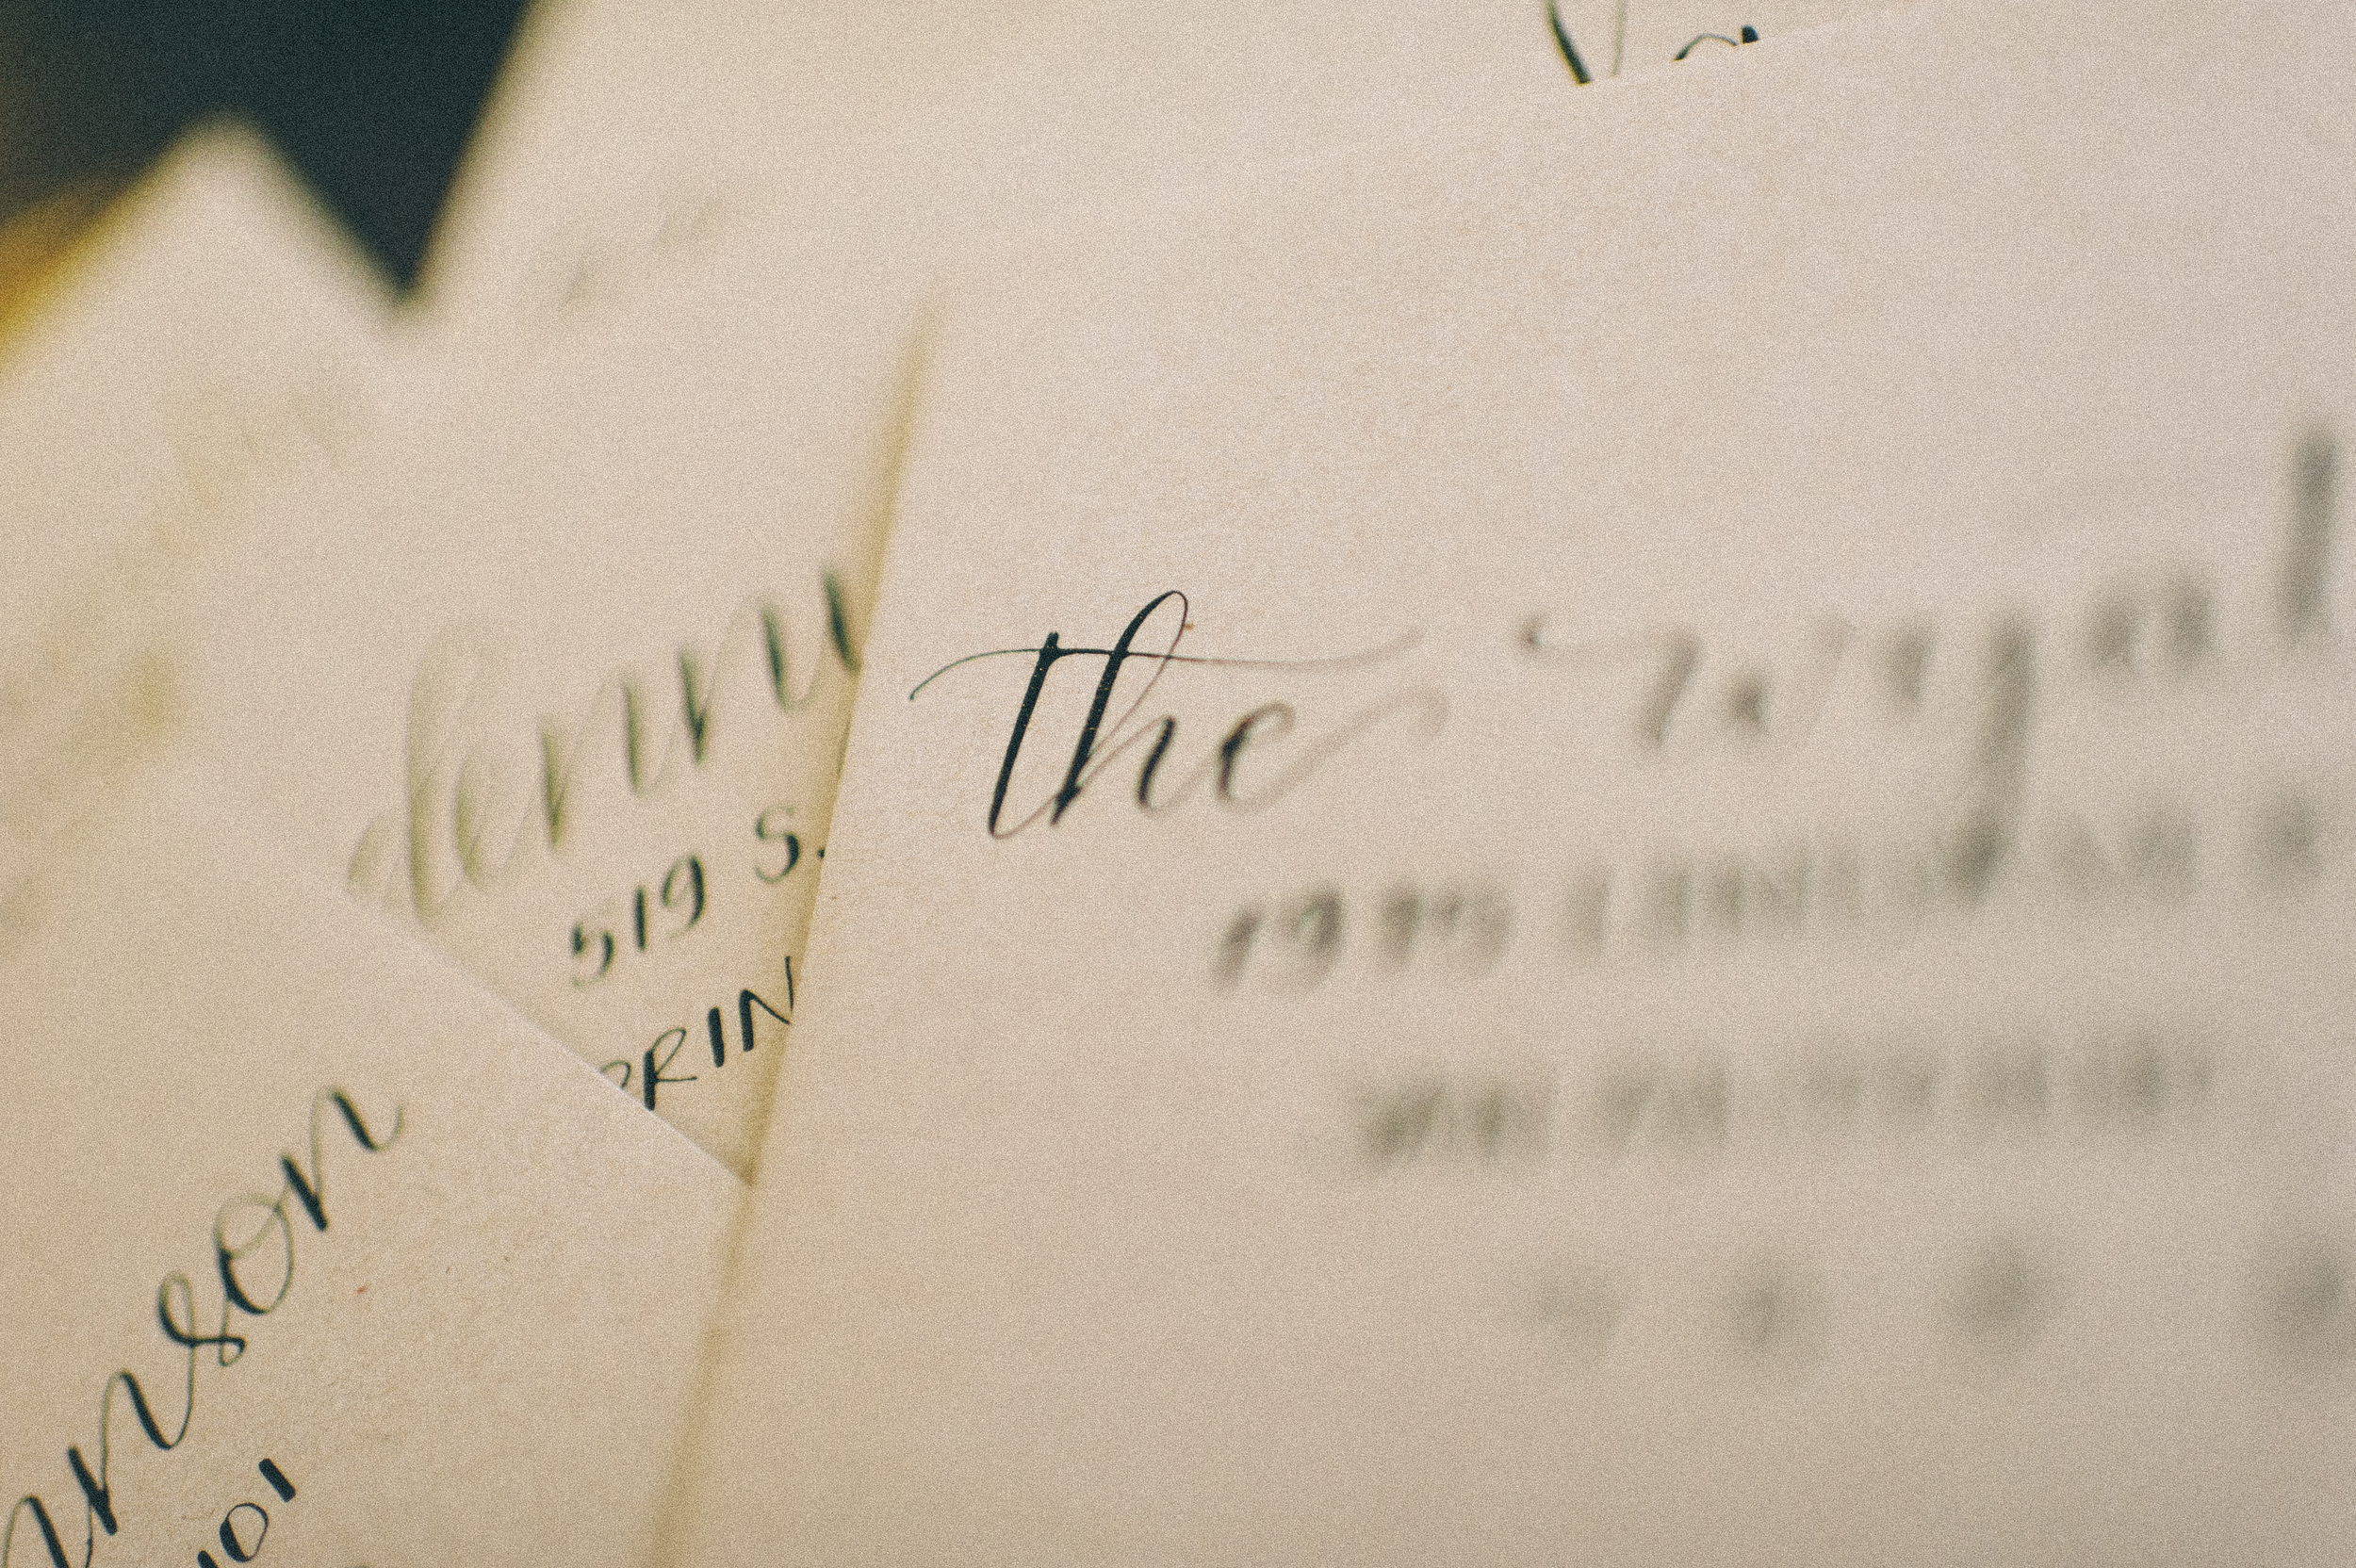 san antonio calligrapher south texas calligrapher modern calligraphy wedding save the dates inspiration addressing bride